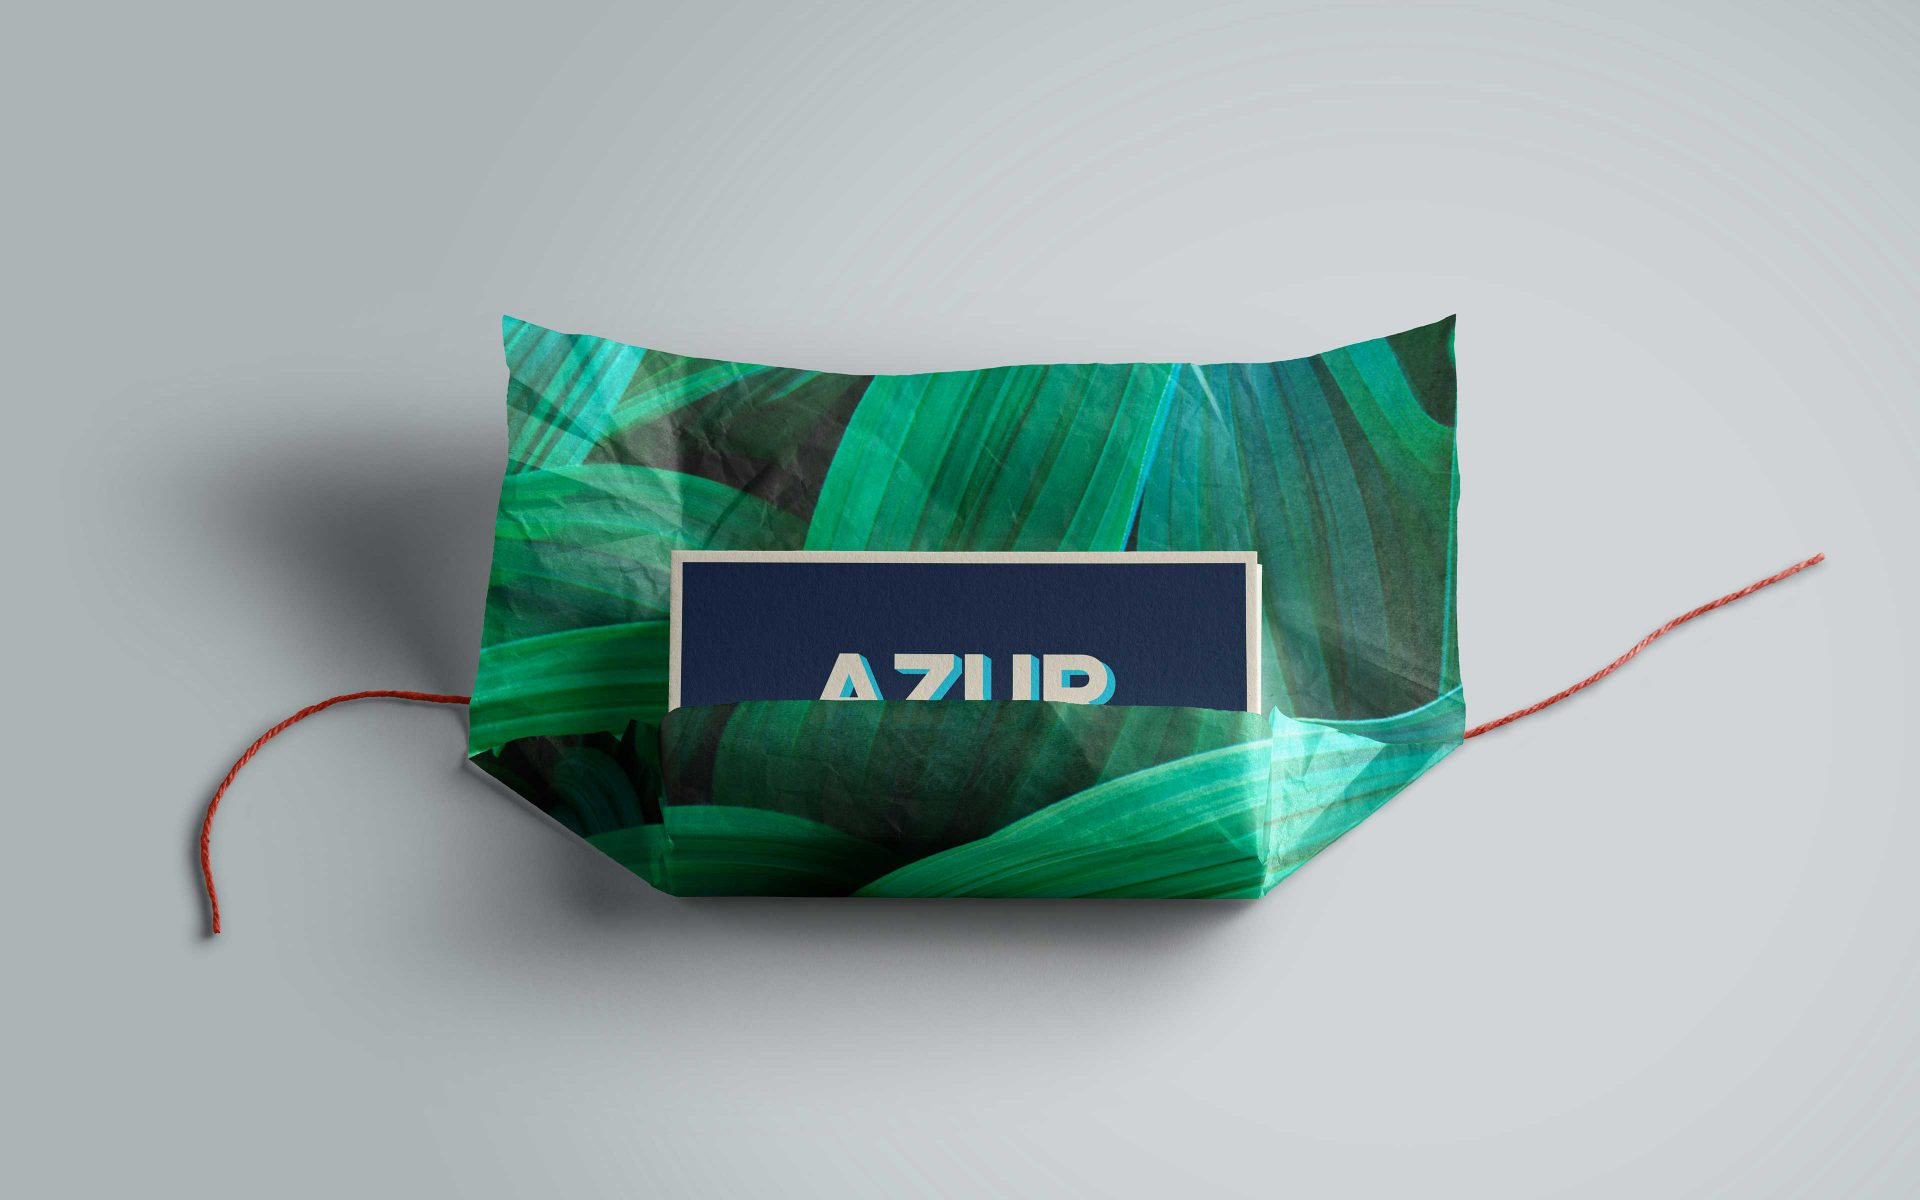 AZUR Toulon property development luxurious green and blue business cards brand logo and creative by DIFFER